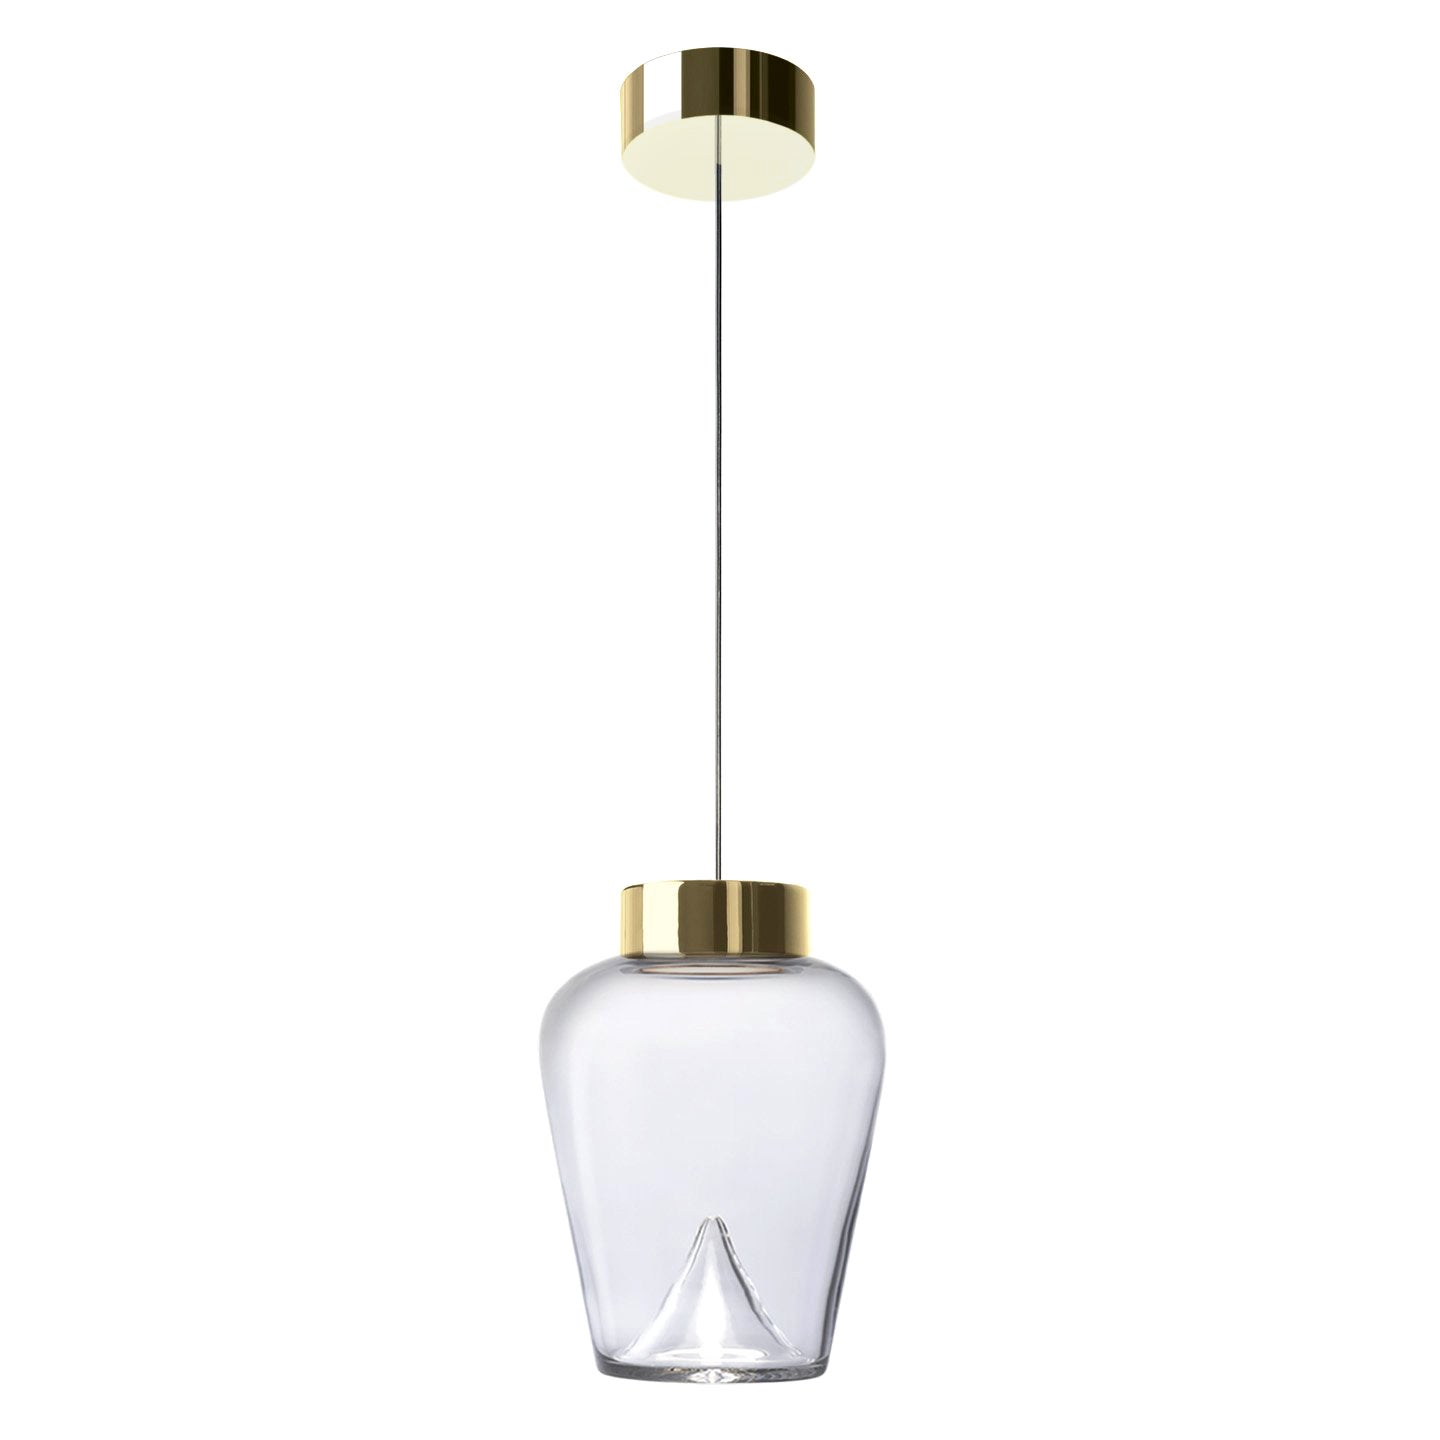 Leucos Aella Thin S Led Pendant Light in Transparent and Gold by Toso & Massari